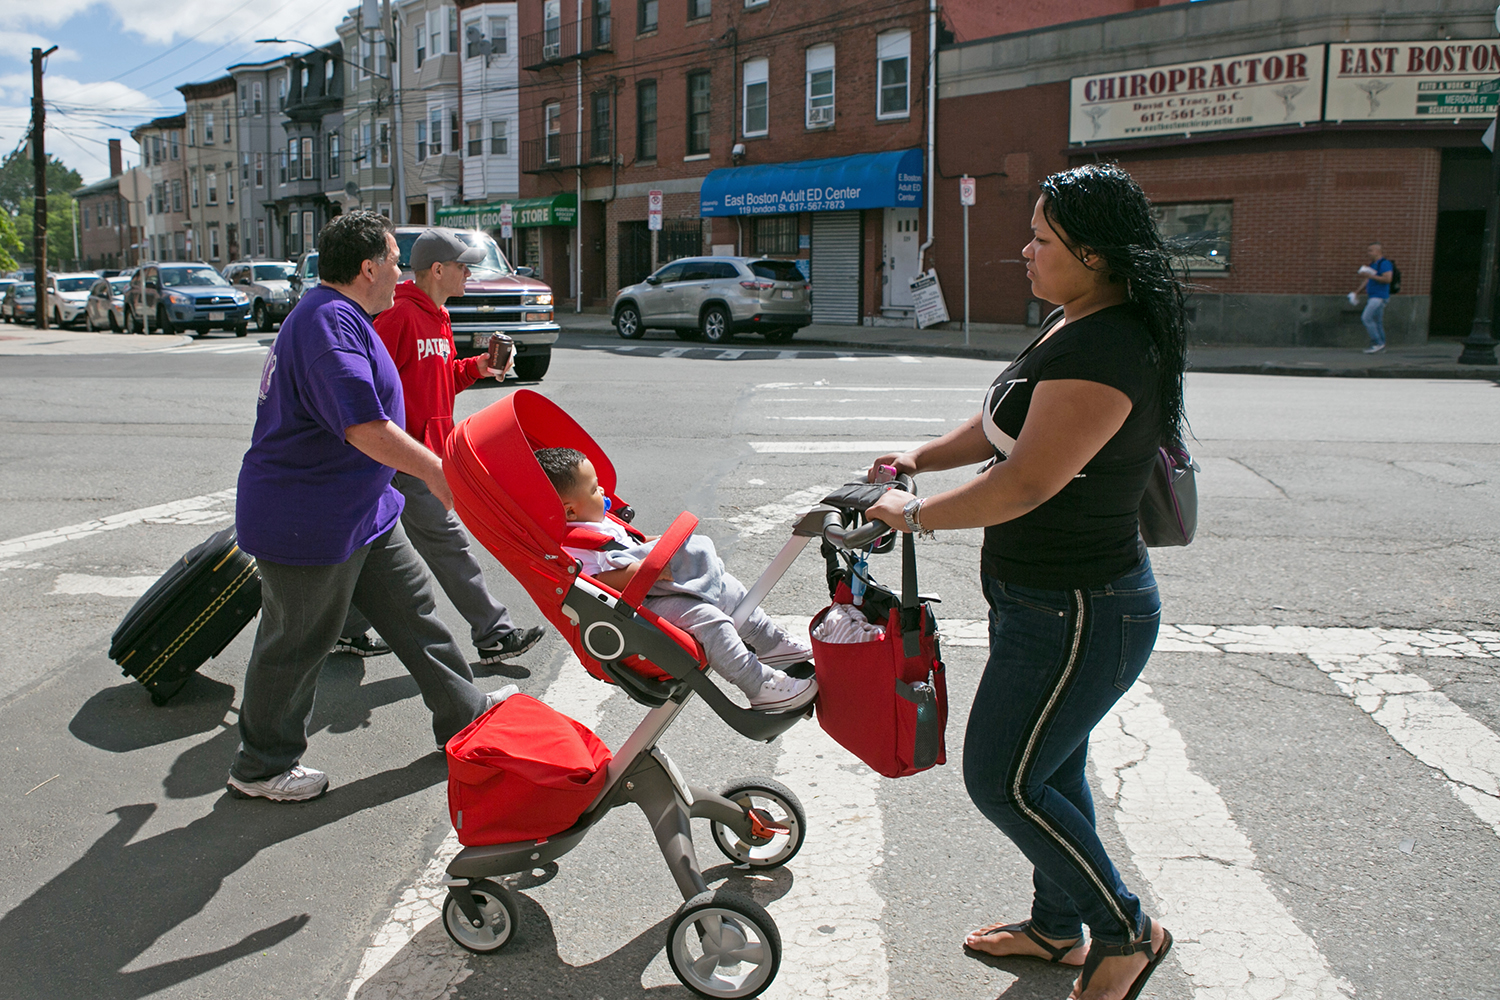 Pedestrians walk in East Boston on June 9, 2016. (Photo by Lauren Owens Lambert/GroundTruth)